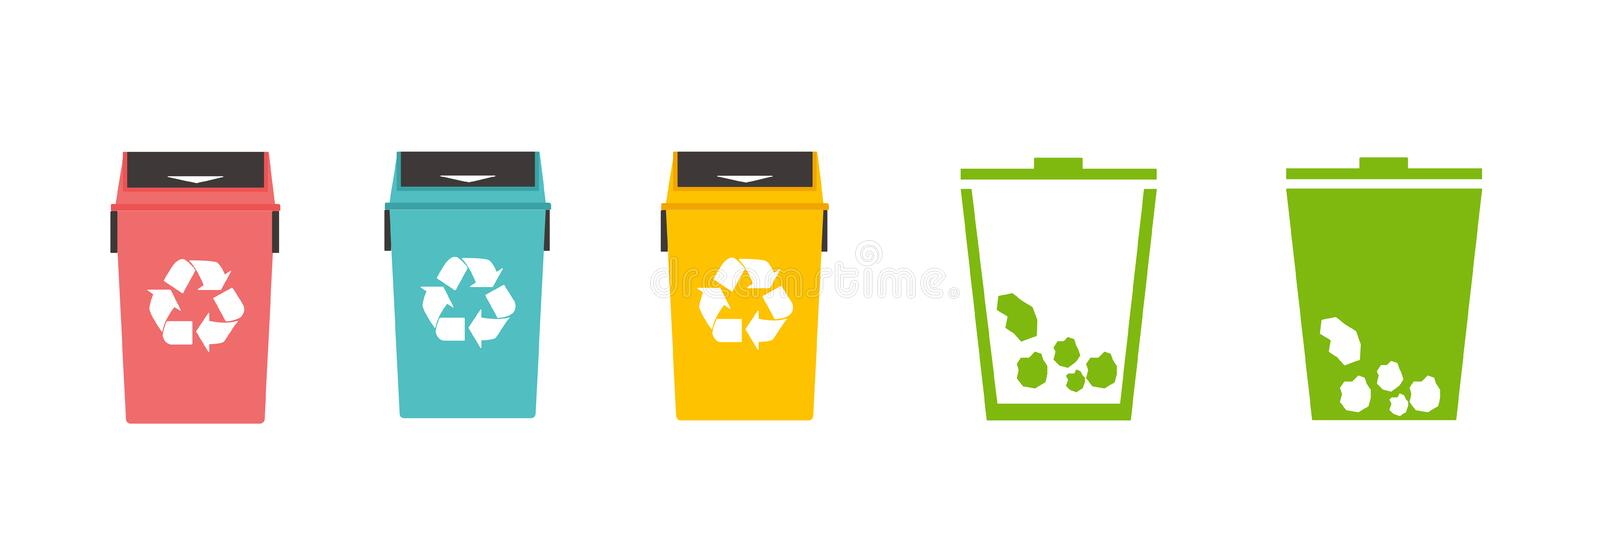 Colorful recycle bins icon- vector illustration. Trash can icon with recycle sign. Garbage bin or basket with recycling symbol. Vector illustration vector illustration